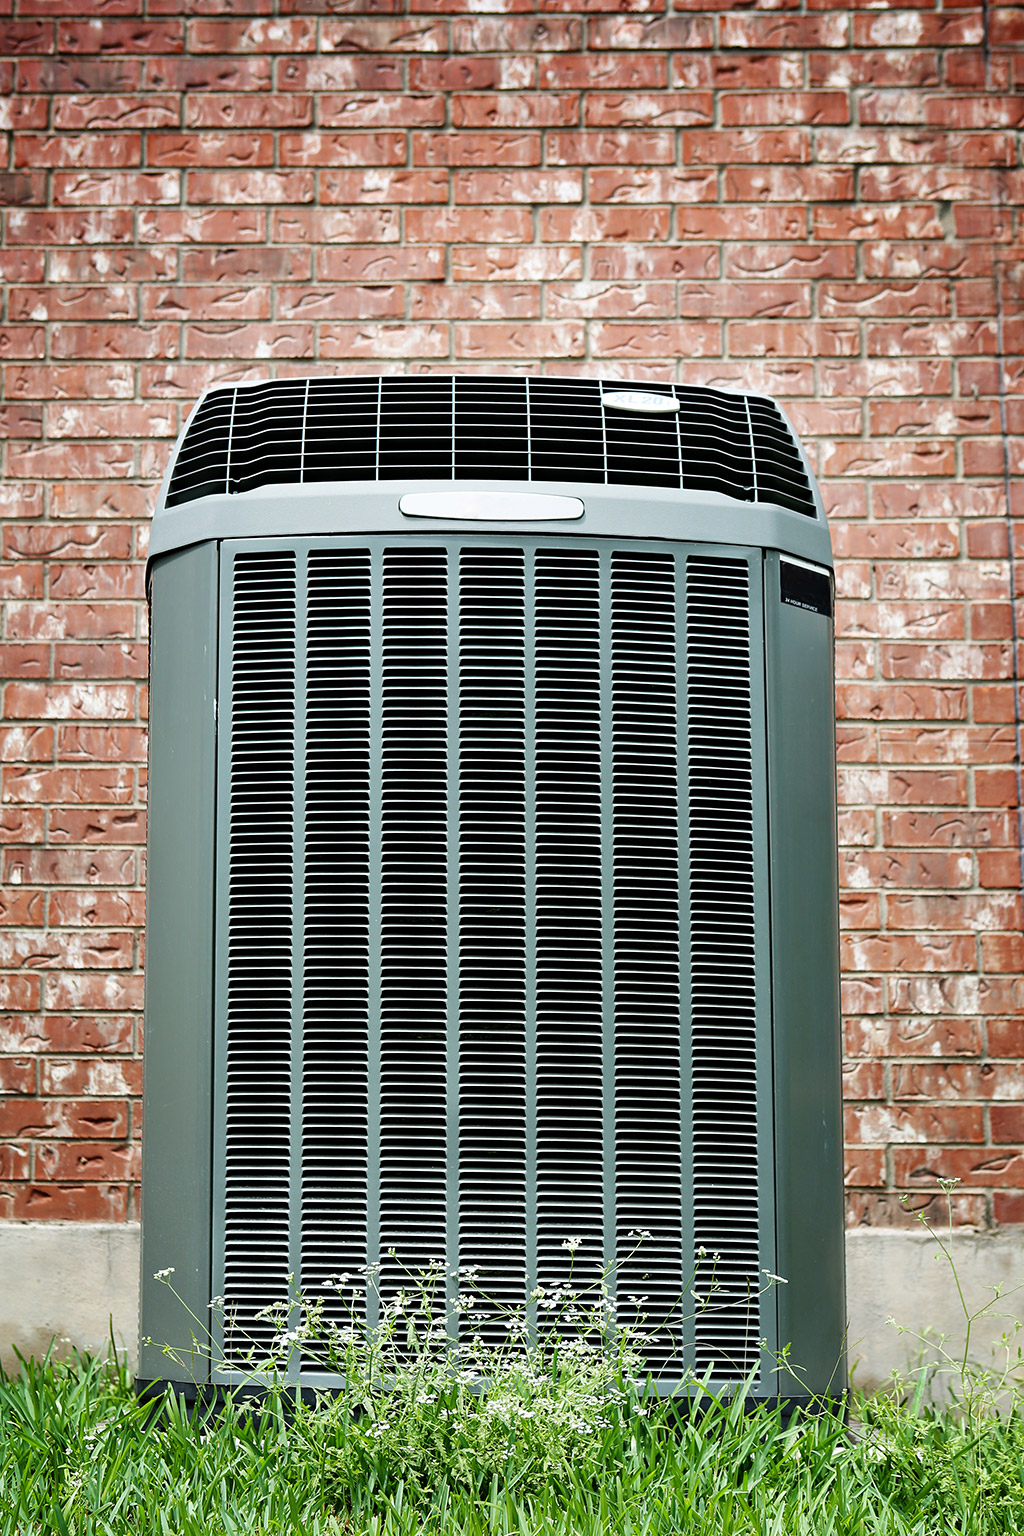 Choosing-a-New-HVAC-System_Heating-and-Air-Conditioning-Service-in-Cleveland,-TN